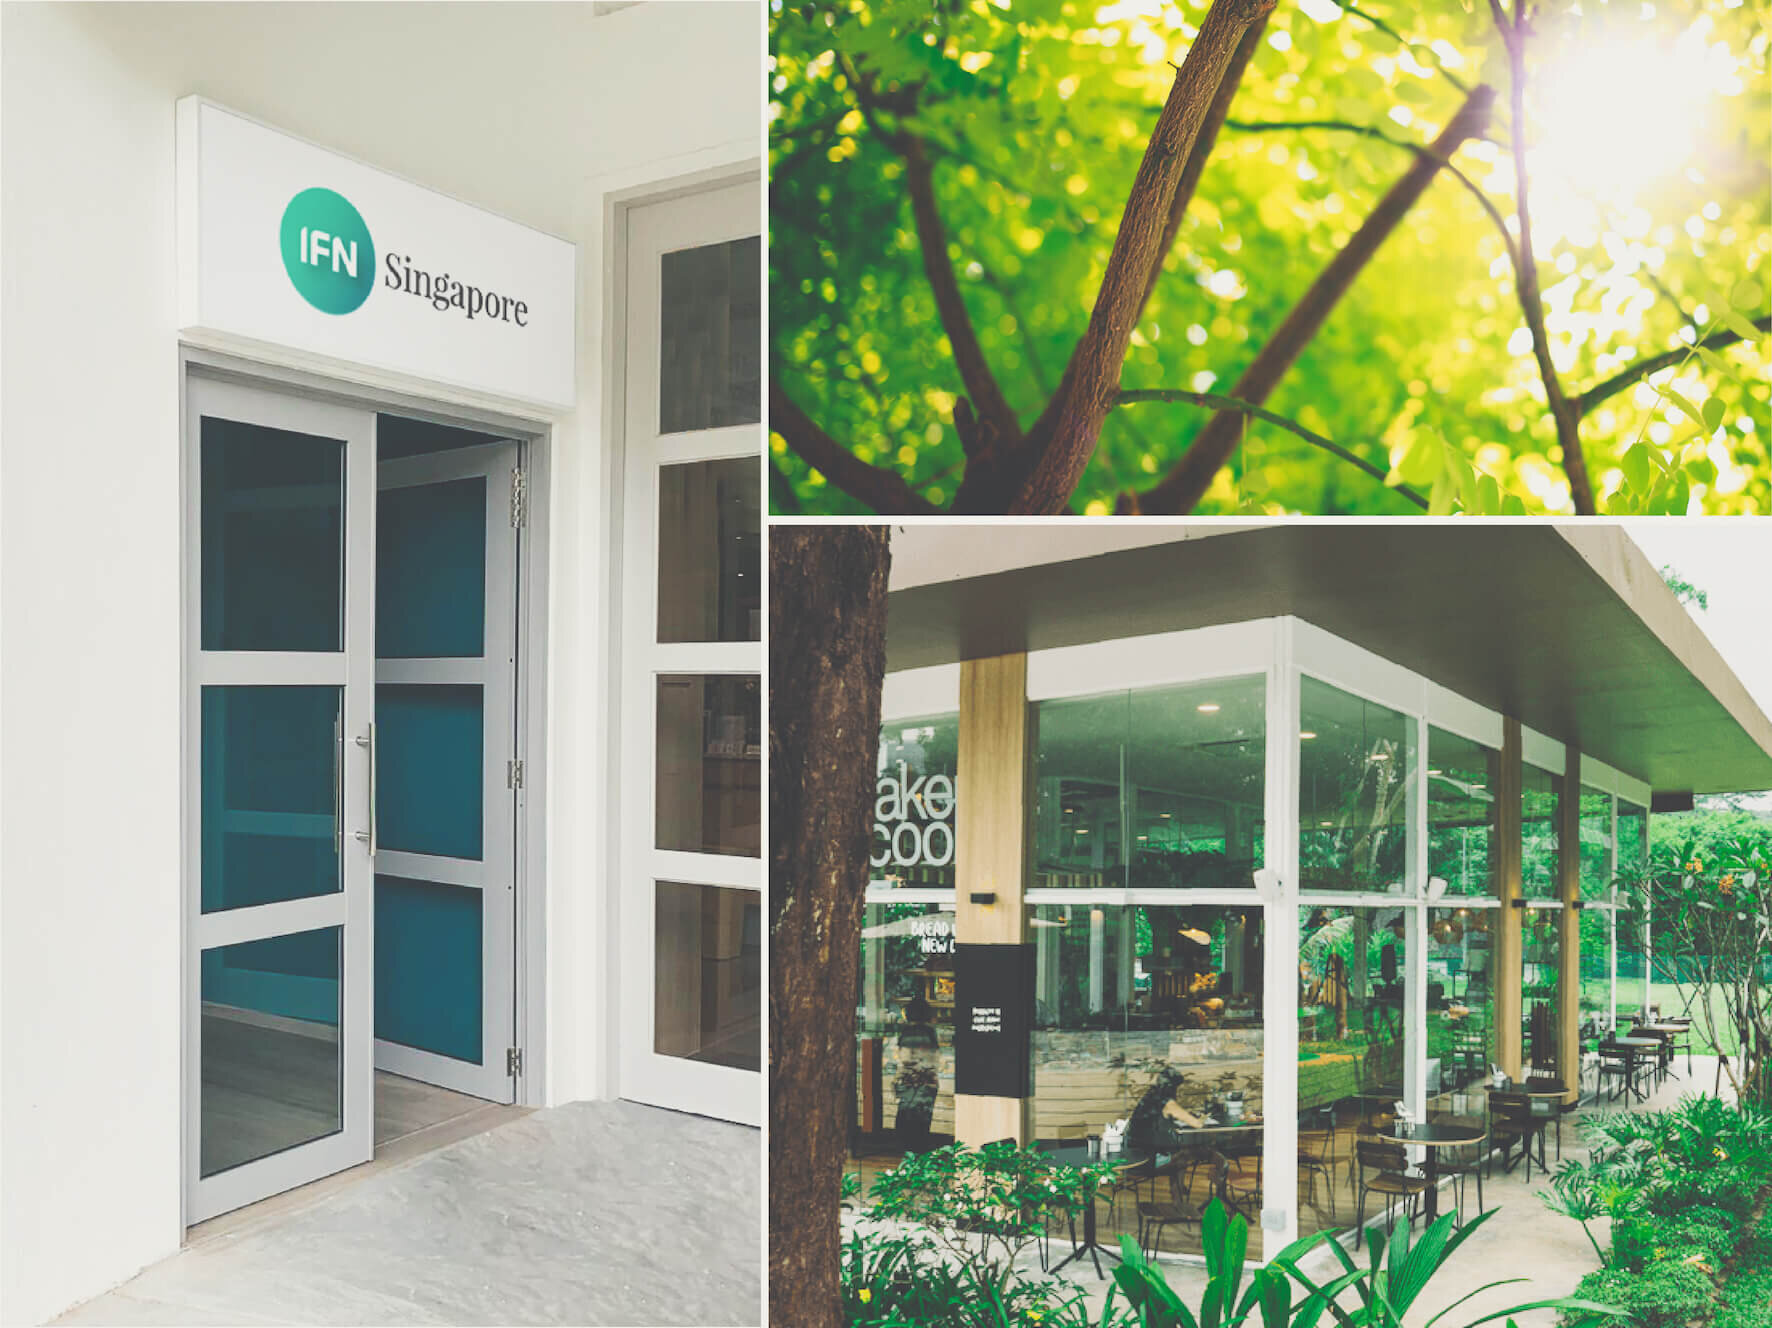 Opening November 2019 - IFN Group is proud to announce that it is expanding its presence throughout the APAC region, with the opening of an additional Affiliate Clinic; IFN Singapore.Register here to receive important updates on our launch.